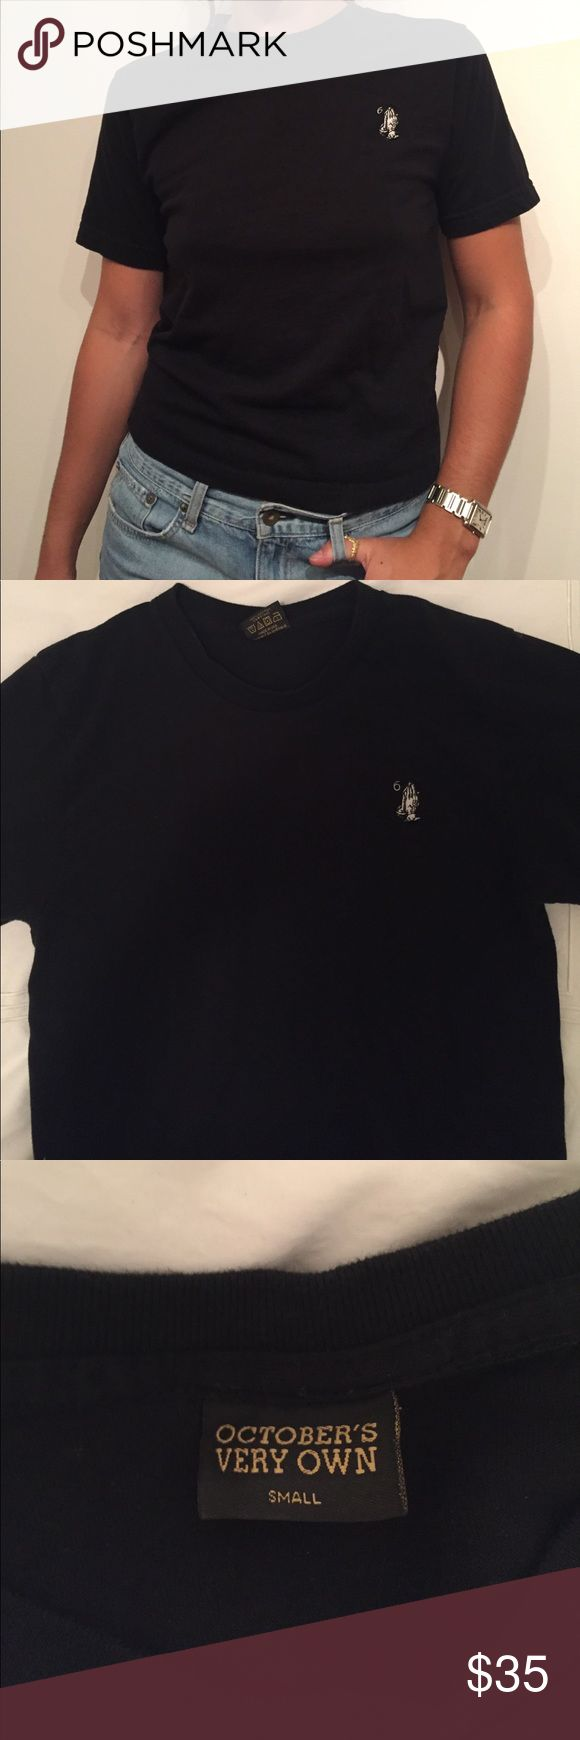 OVO October's Very Own T Shirt Drake OVO black short sleeve t shirt with 6 hands on top right corner. Size small. Runs true to size. Excellent condition rarely worn October's Very Own Tops Tees - Short Sleeve